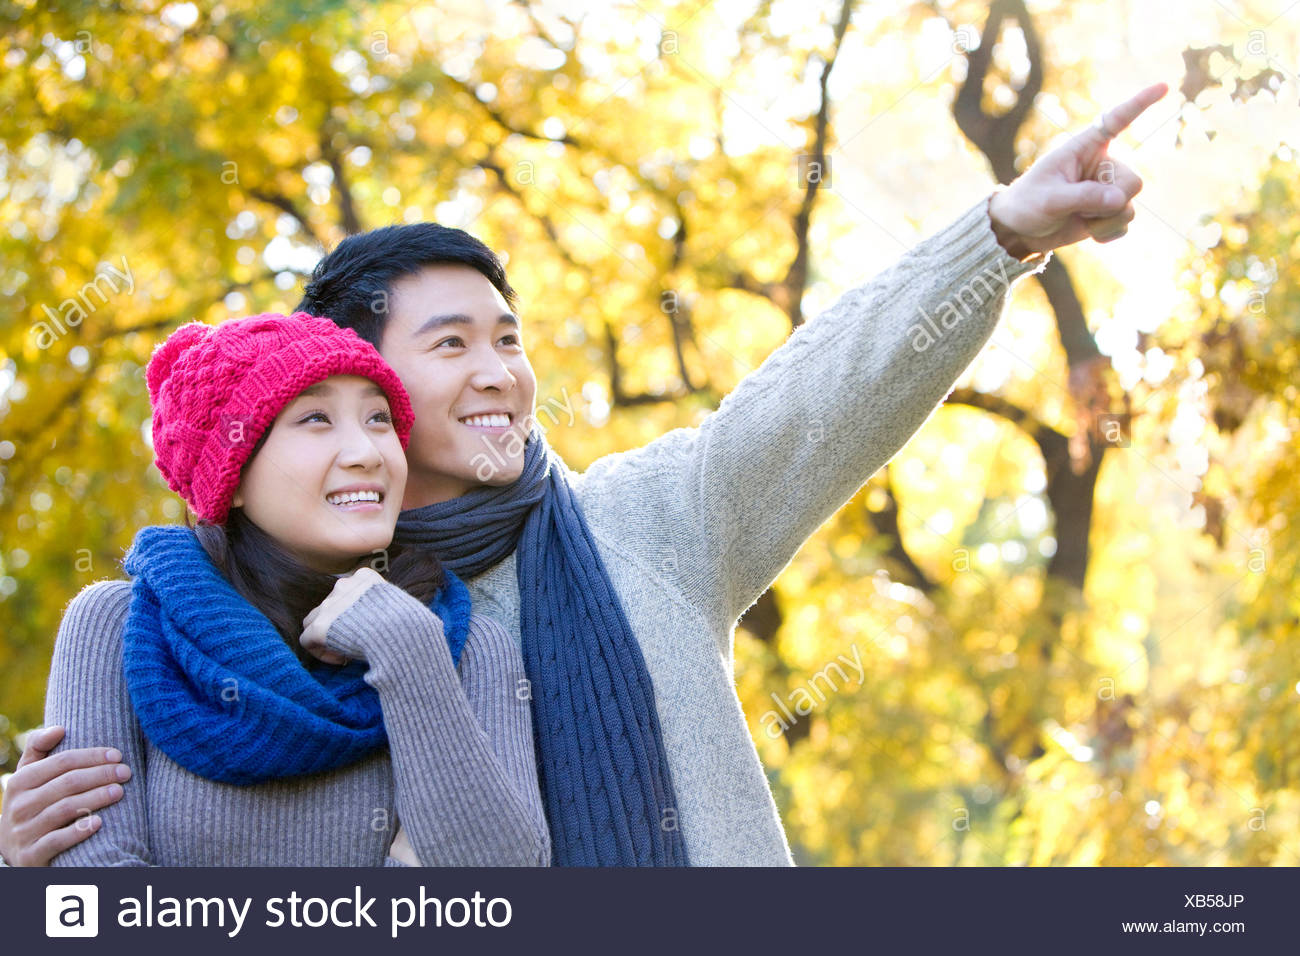 Young Couple Enjoying a Park in Autumn Stock Photo